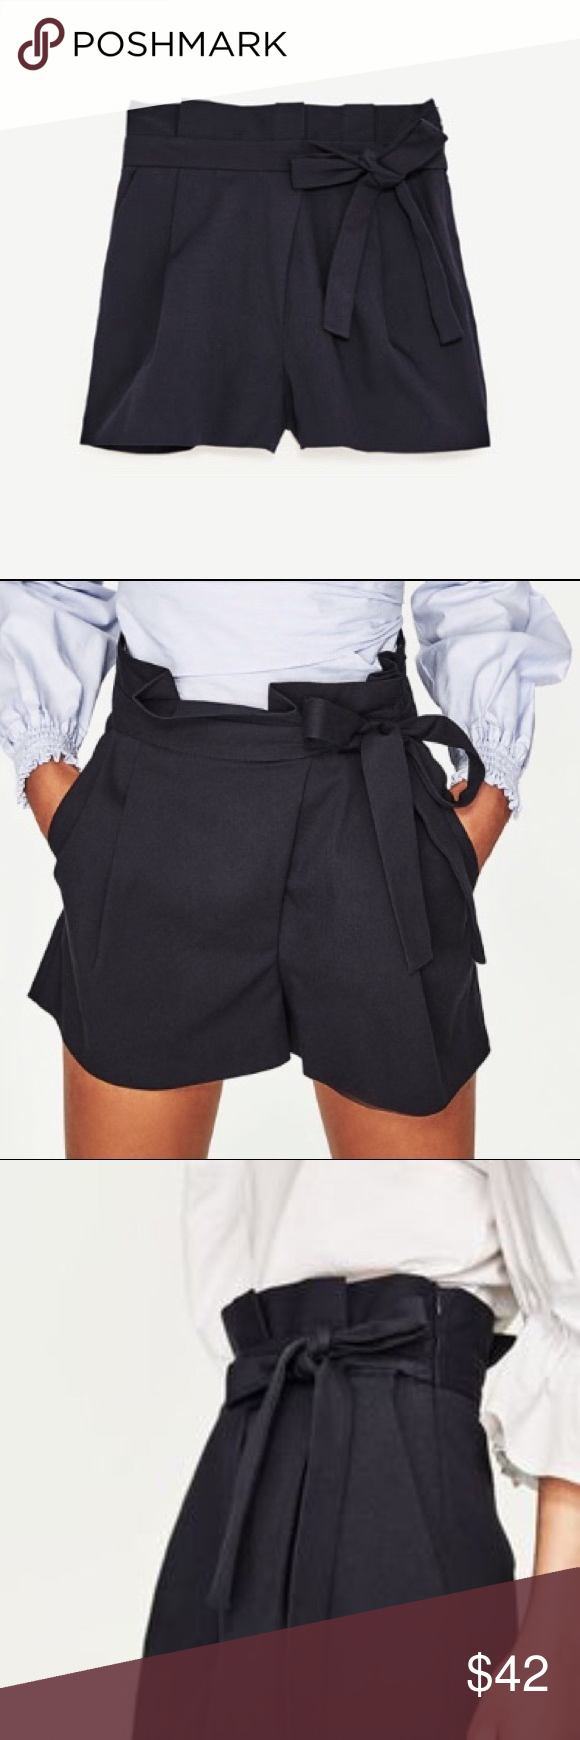 11f1262c ZARA Black Bermuda Pleated Bow High Waist Shorts Mini, Mid-Rise Bermuda  short with side zip fastening, pleated Details. Matching bow at the waist.